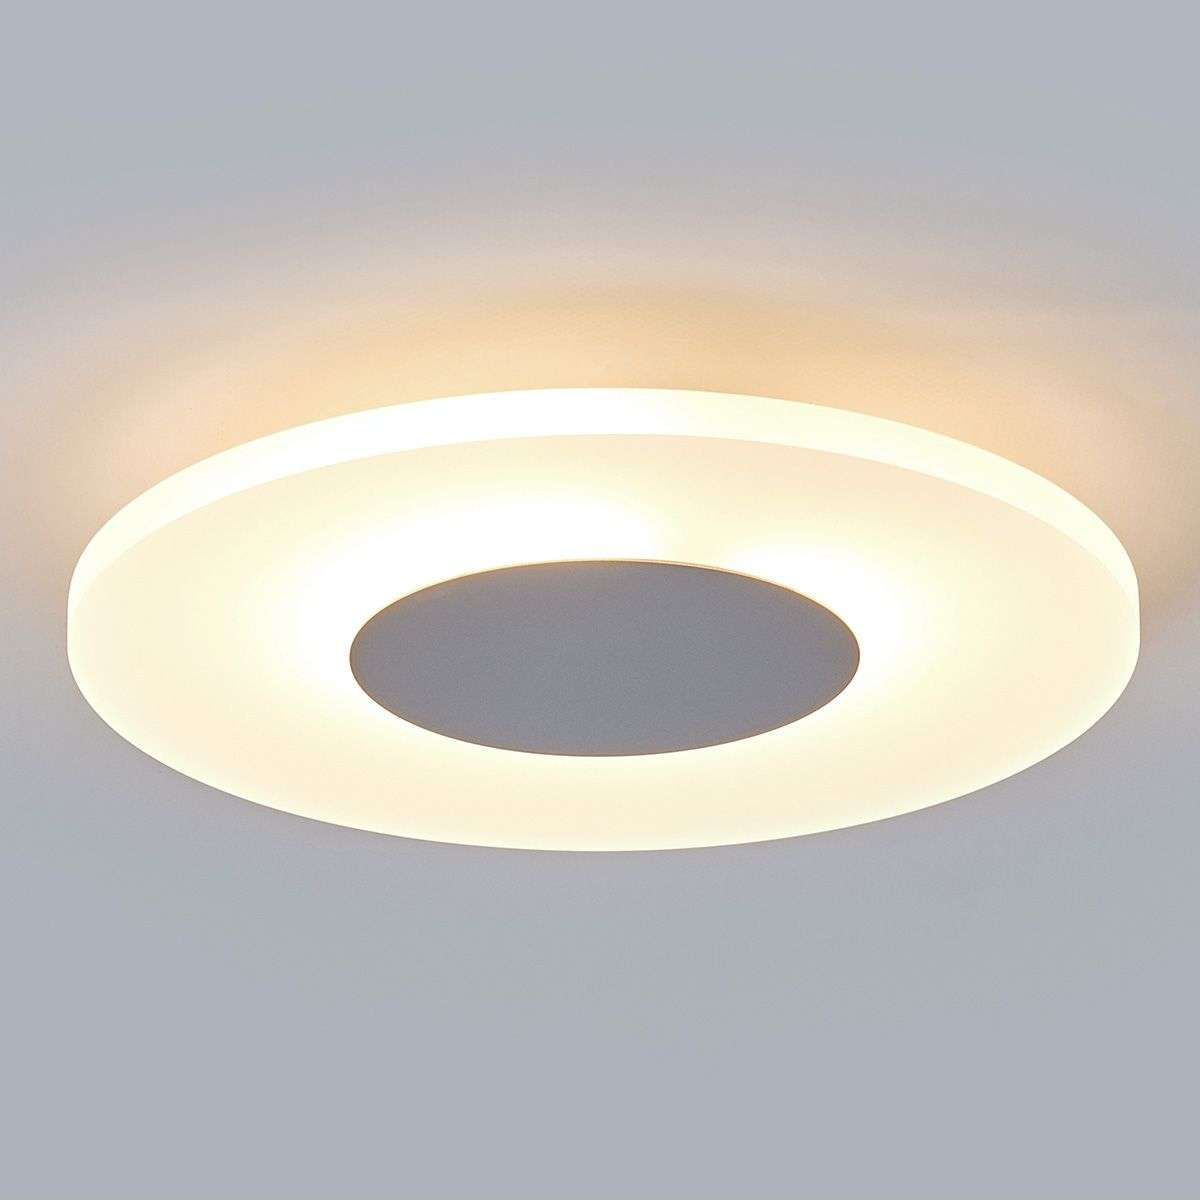 Tarja led wall light decorative for Moderne led deckenlampen